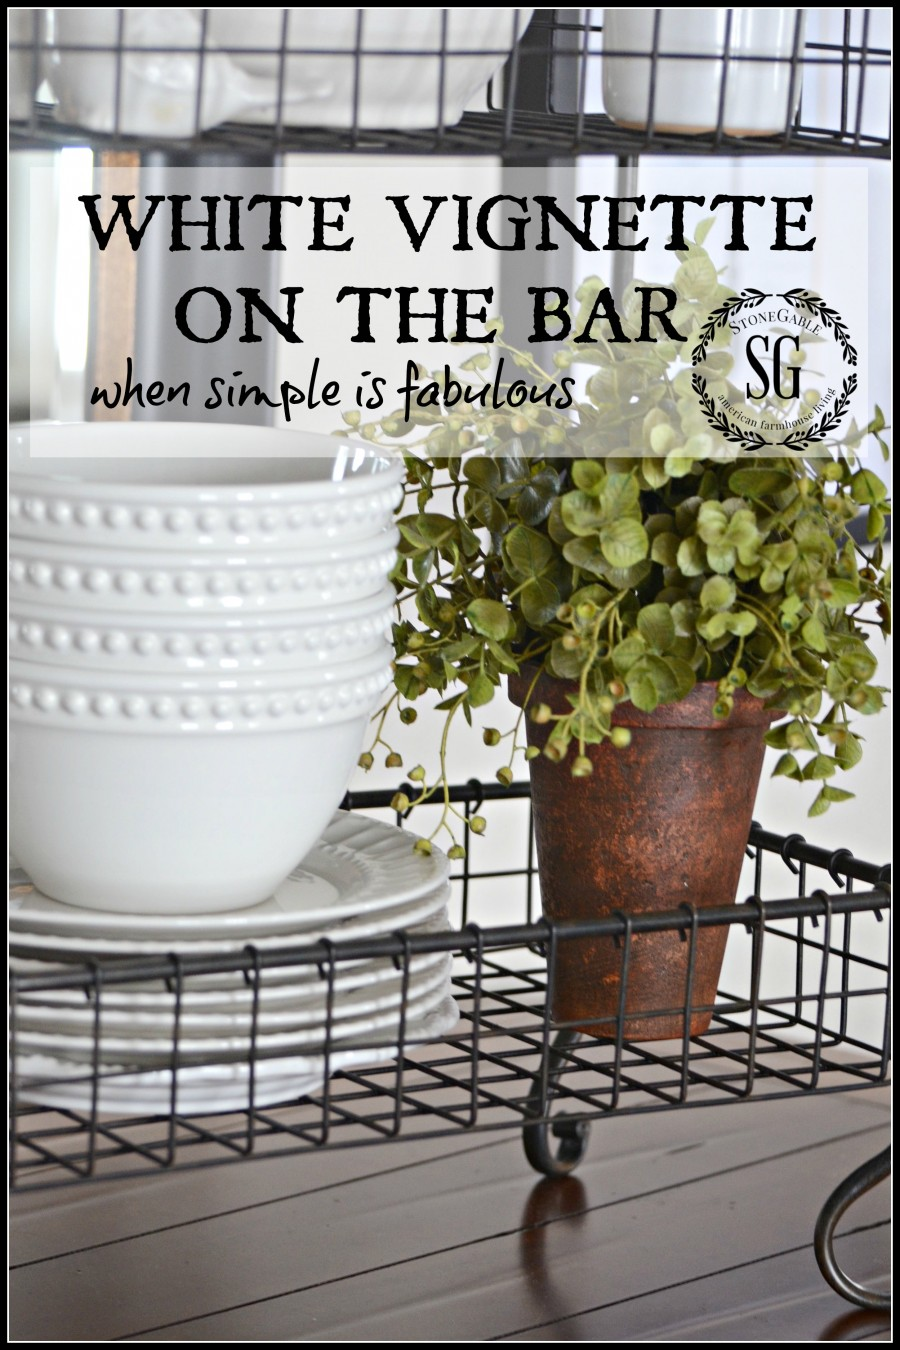 WHITE BAR VIGNETTE… when simple is fabulous